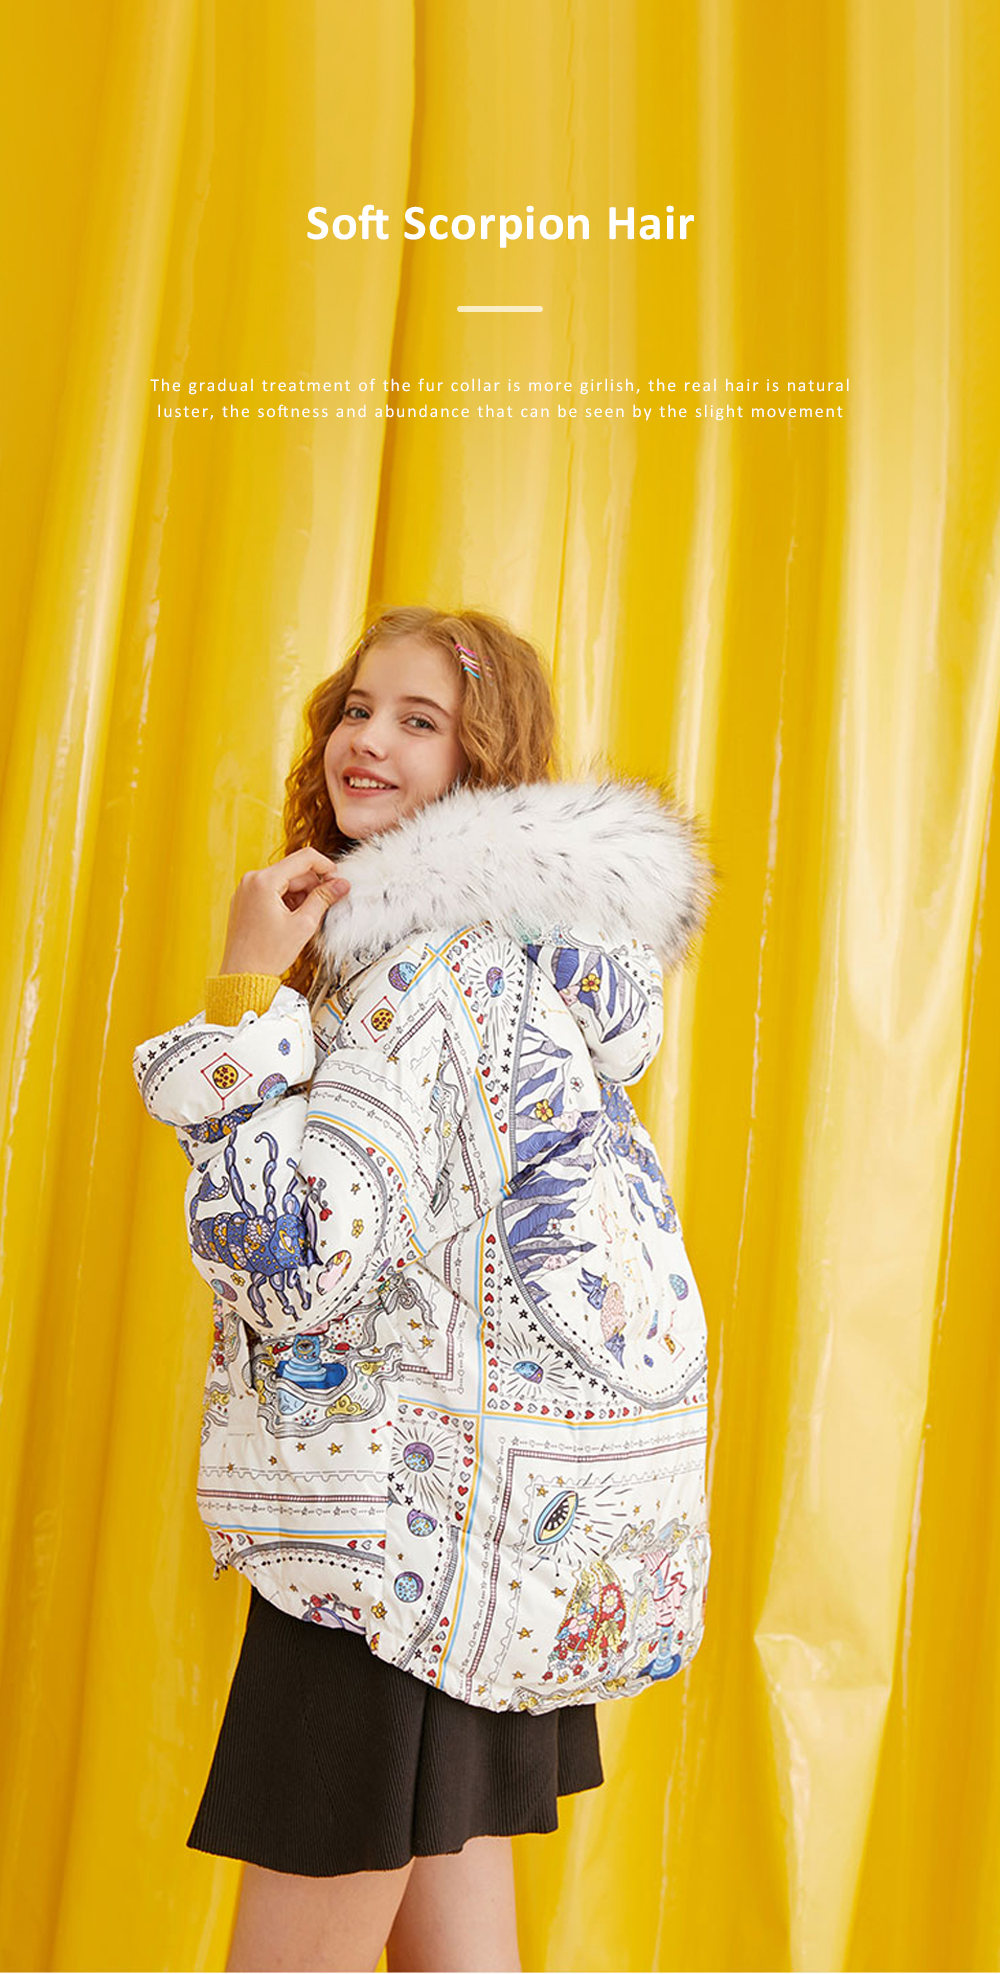 ELFSACK Autumn Winter New Women's Cotton Printed Graffiti Scorpio Cotton Coat Down Jacket With Hooded Fur Collar 4